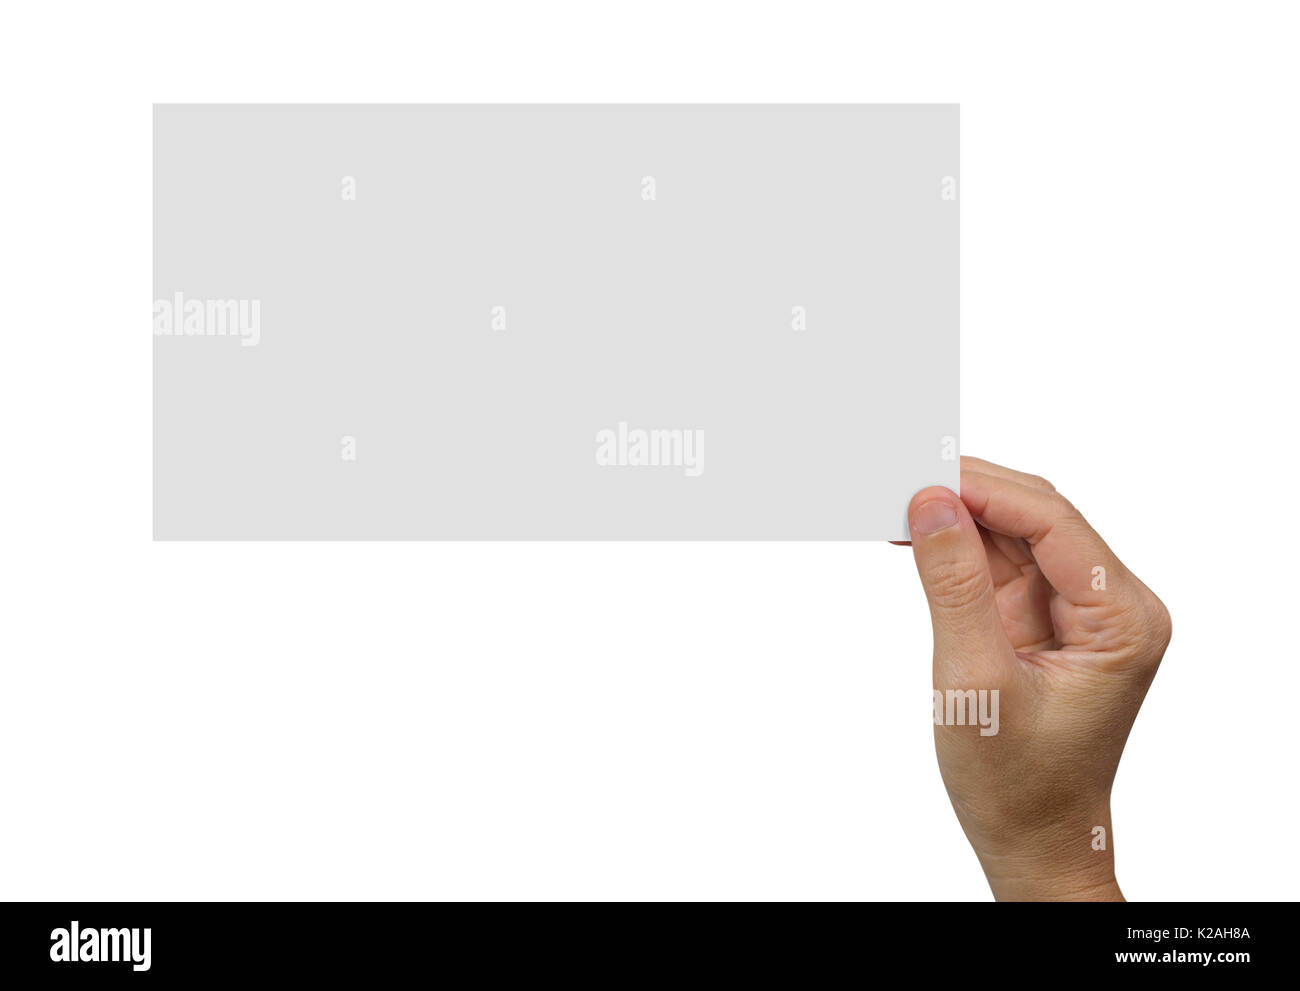 Hands holding a white blank poster for advertising on an isolated white background, concept and idea for business. - Stock Image